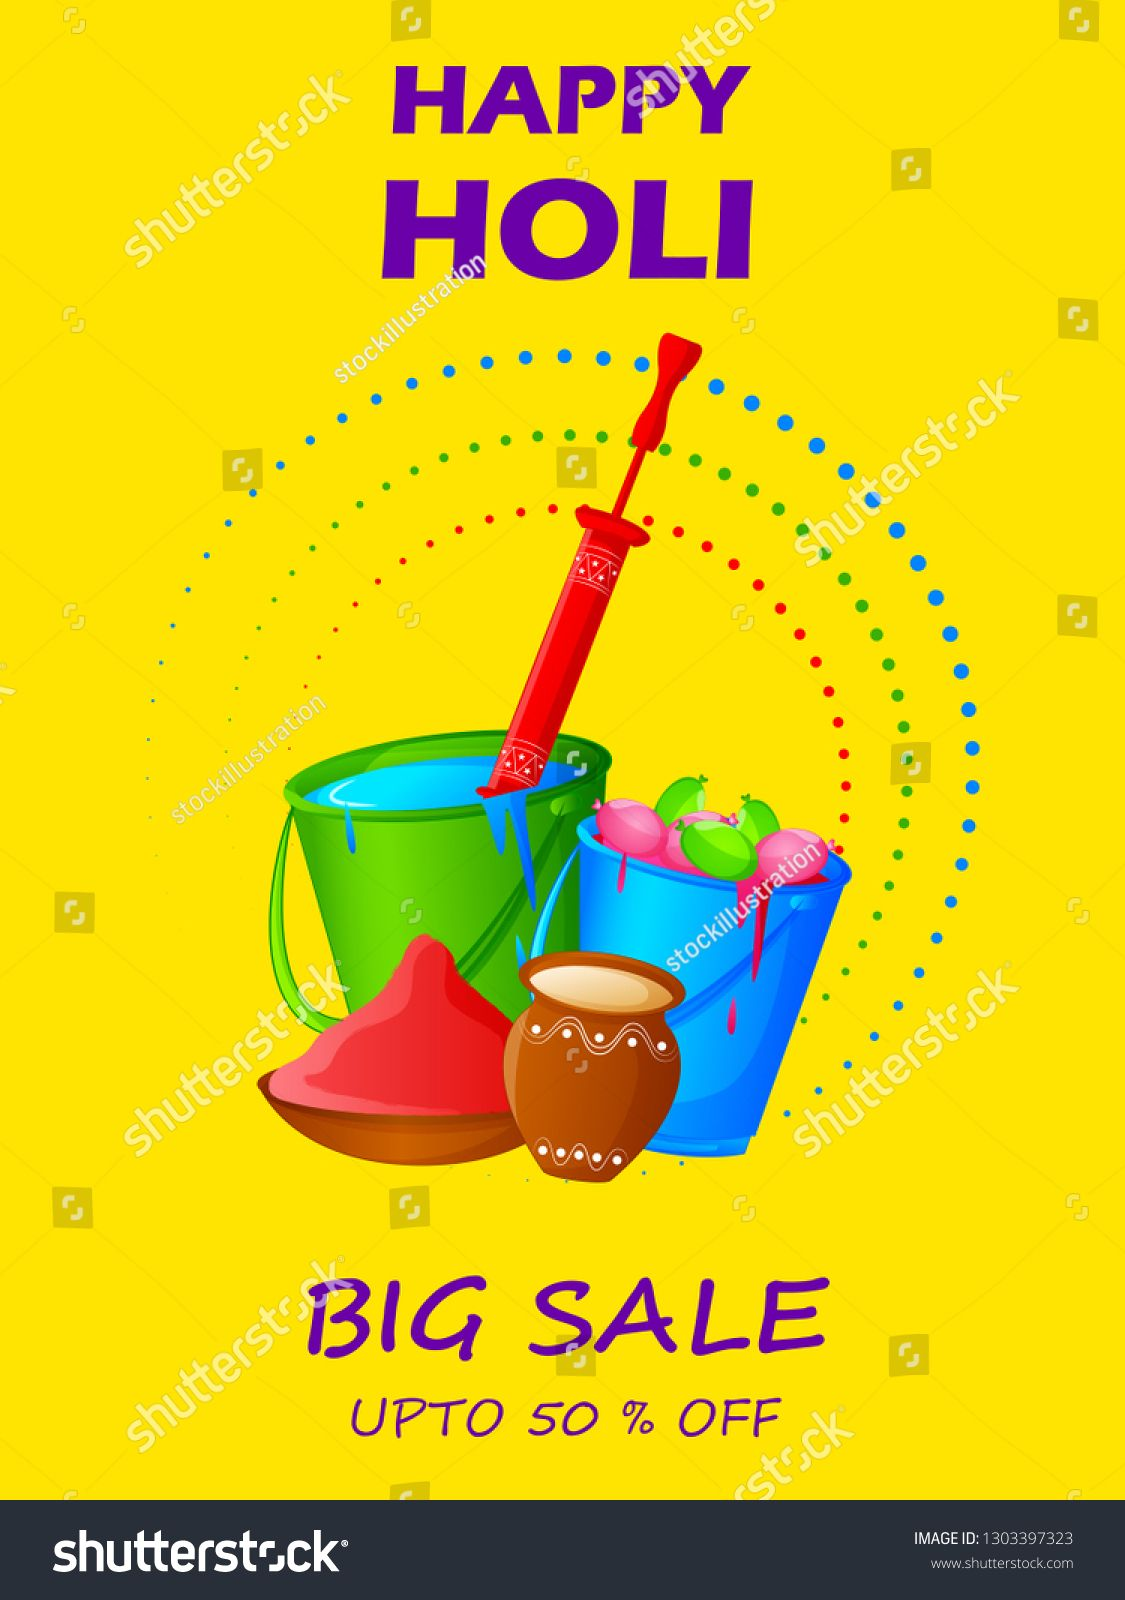 Colorful Traditional Holi Shopping Discount Offer Advertisement